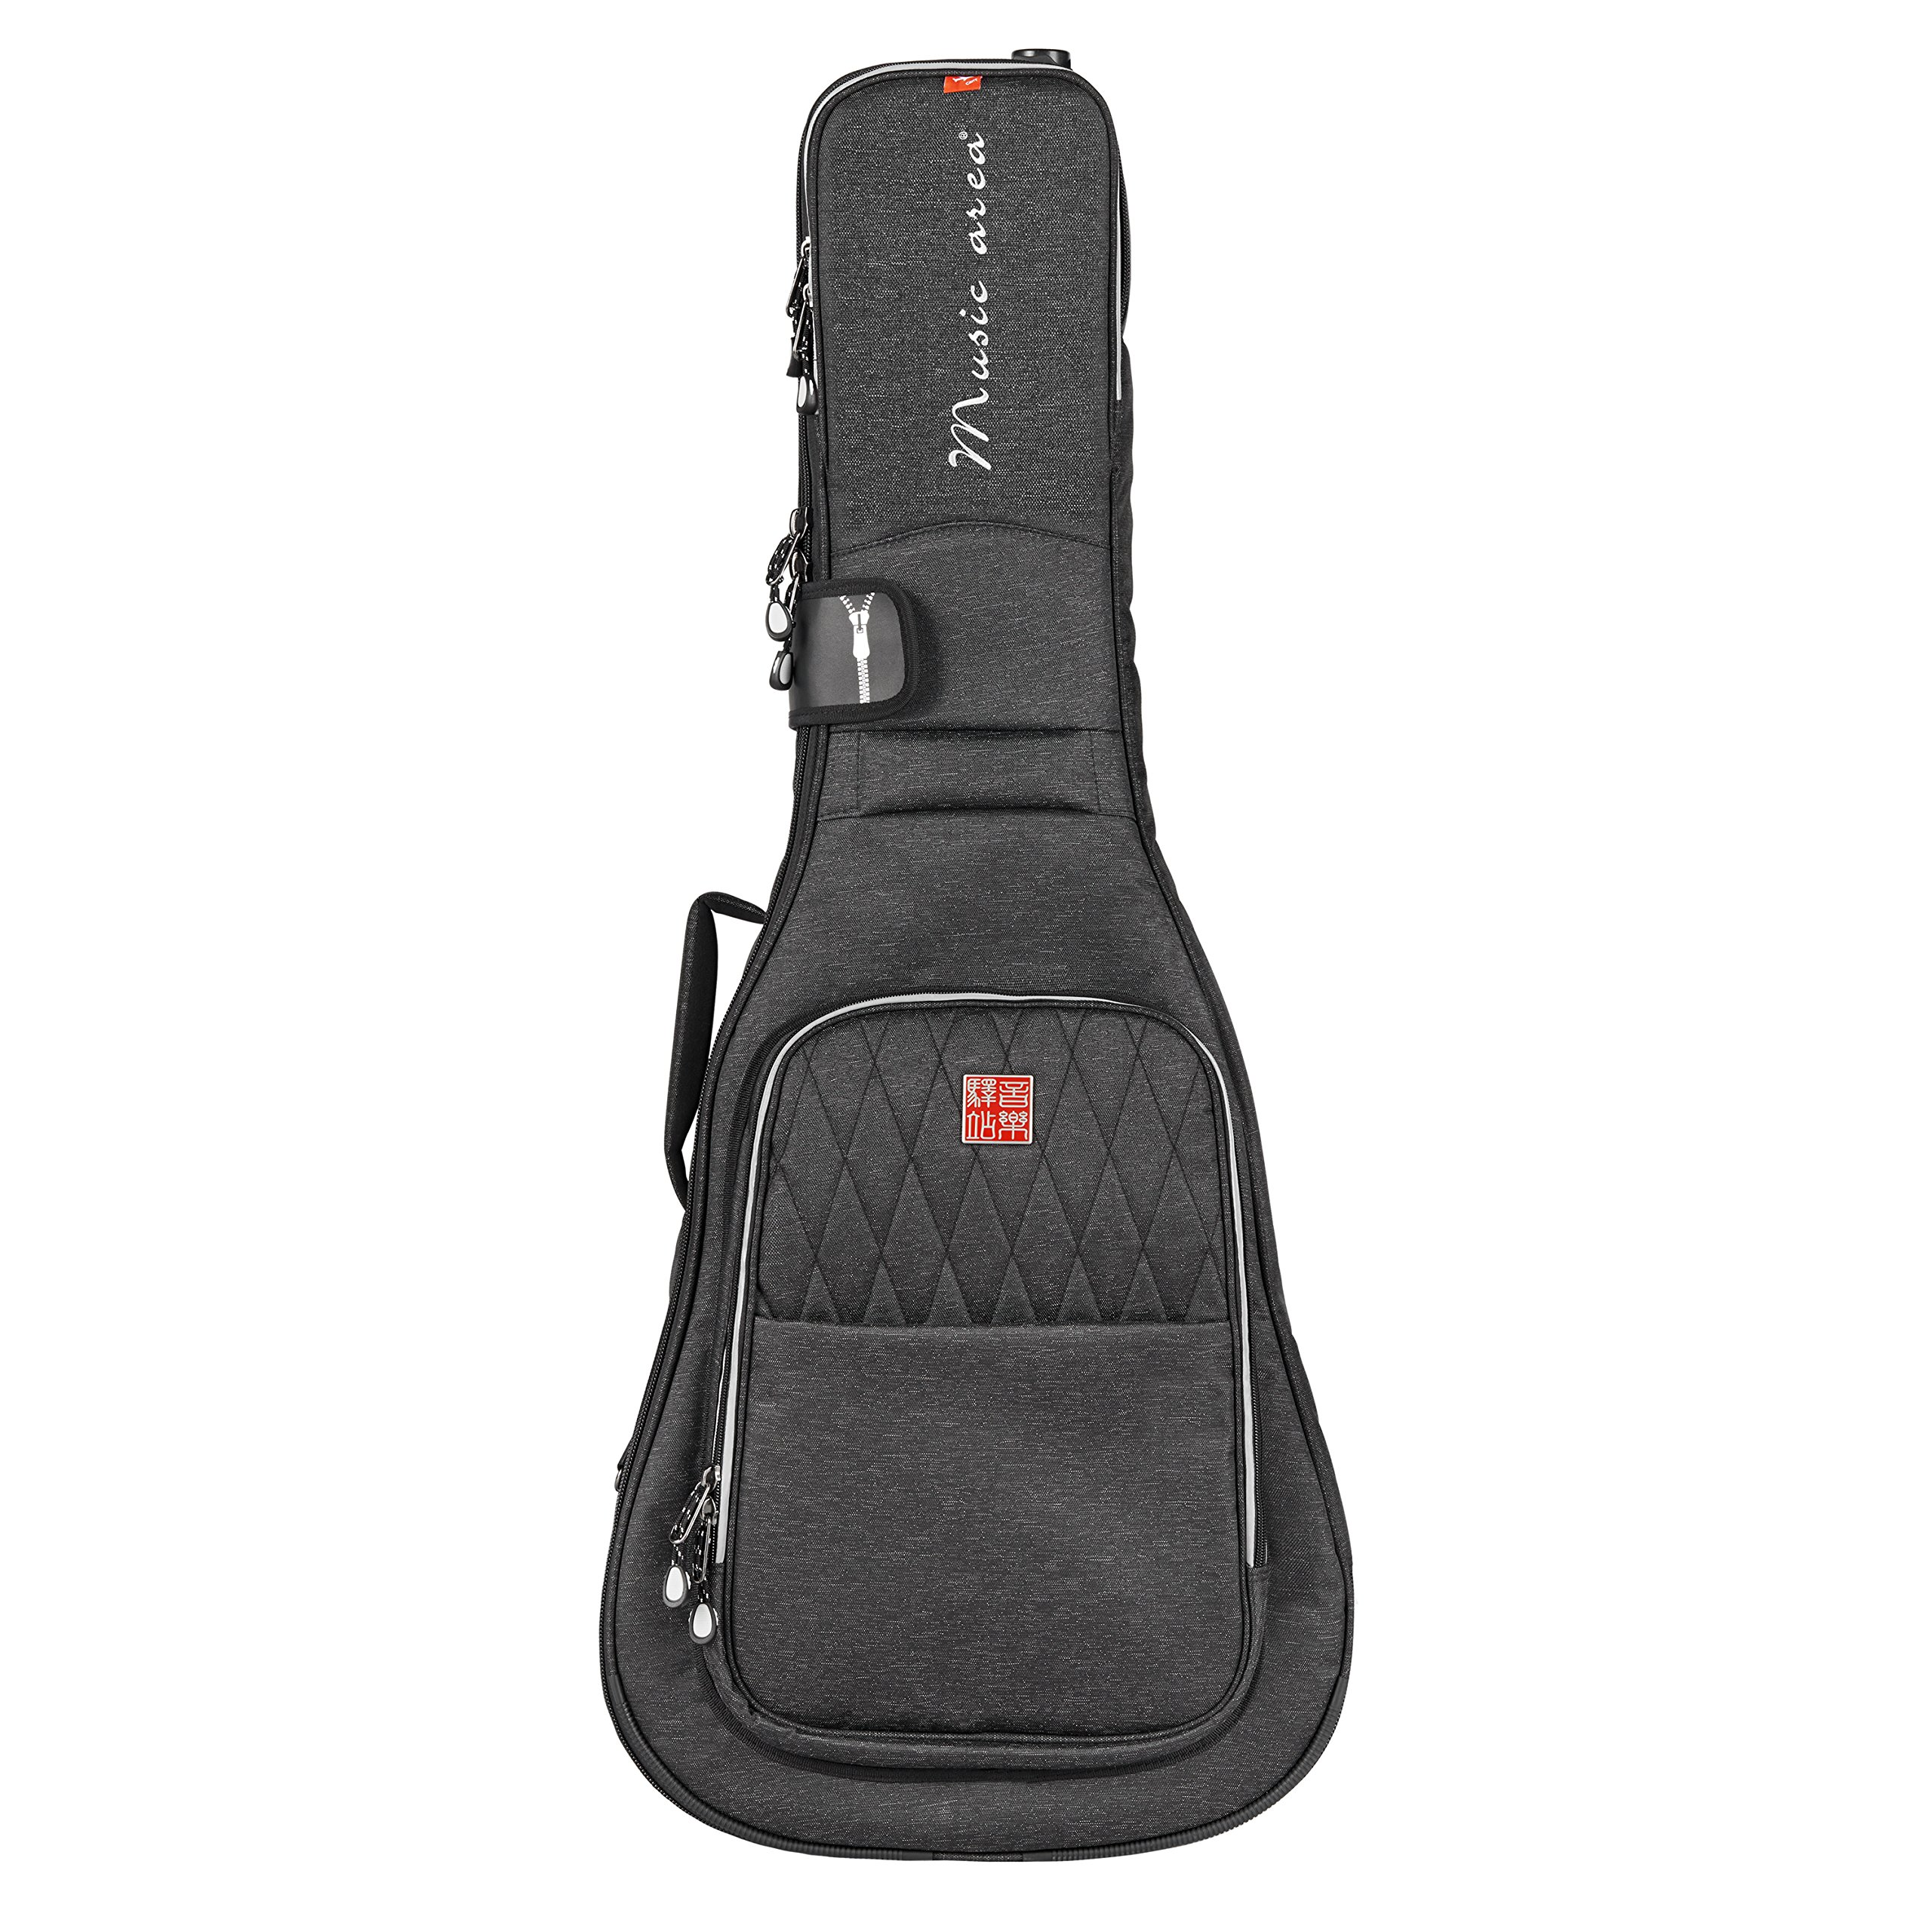 Music Area TANG 30 Series Acoustic Bag - Black (TANG30-DA-BLK) by Music Area